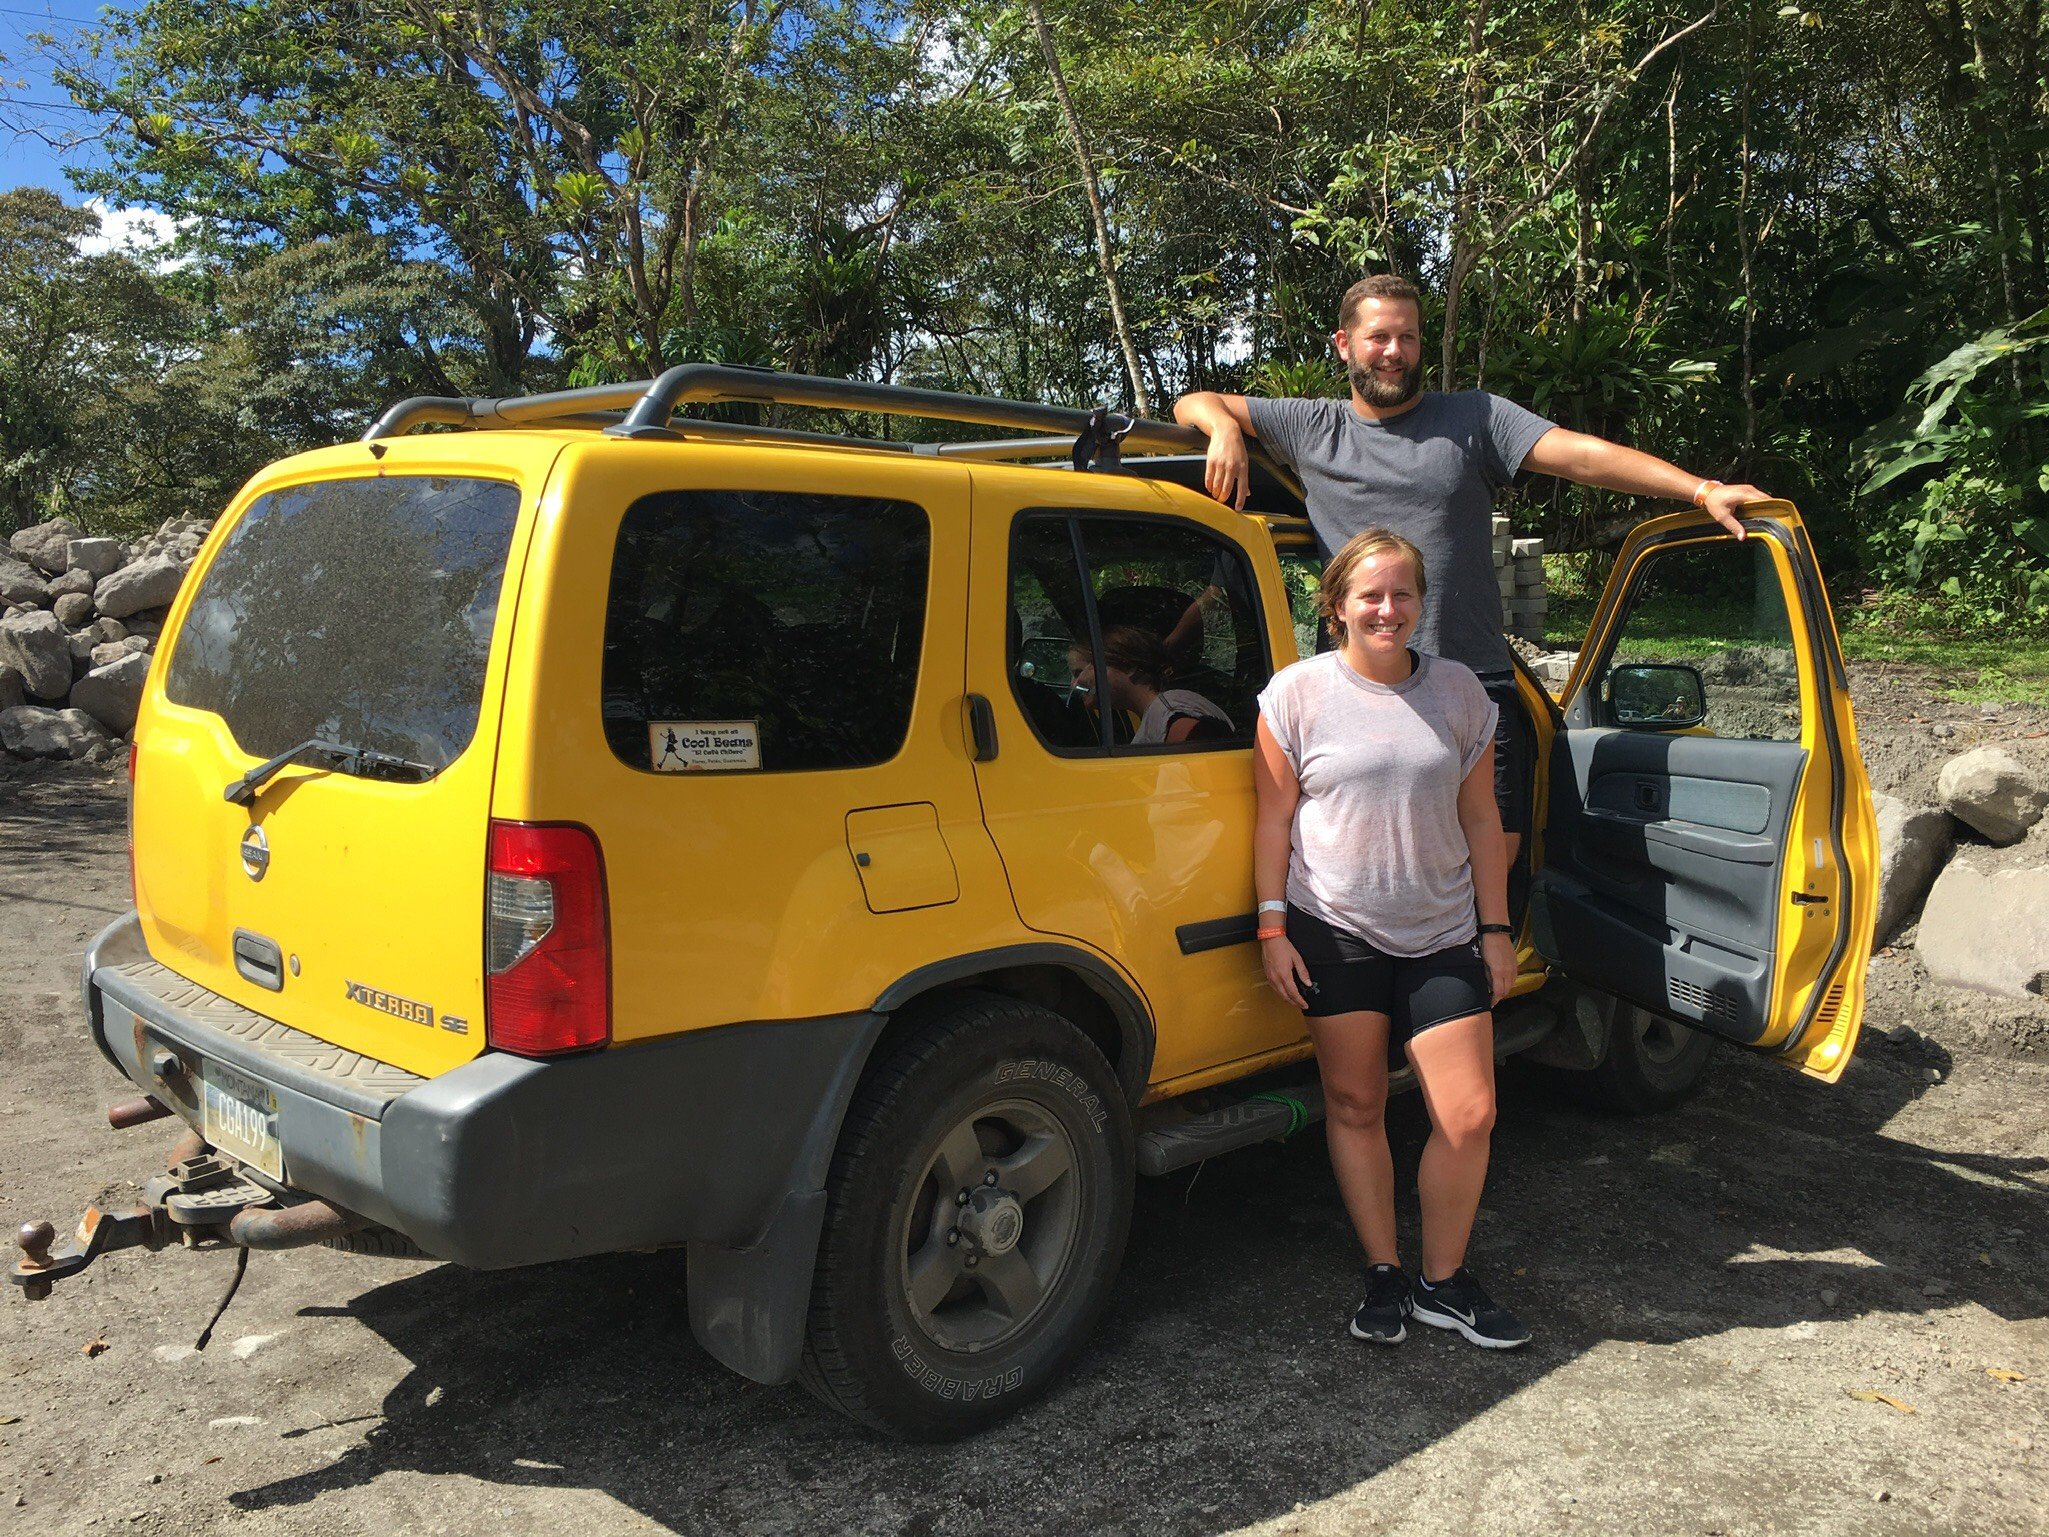 Gary-and-Naomi-Brits-bought-Nissan-Xterra-in-America-for-overland-road-trip-through-Central-America